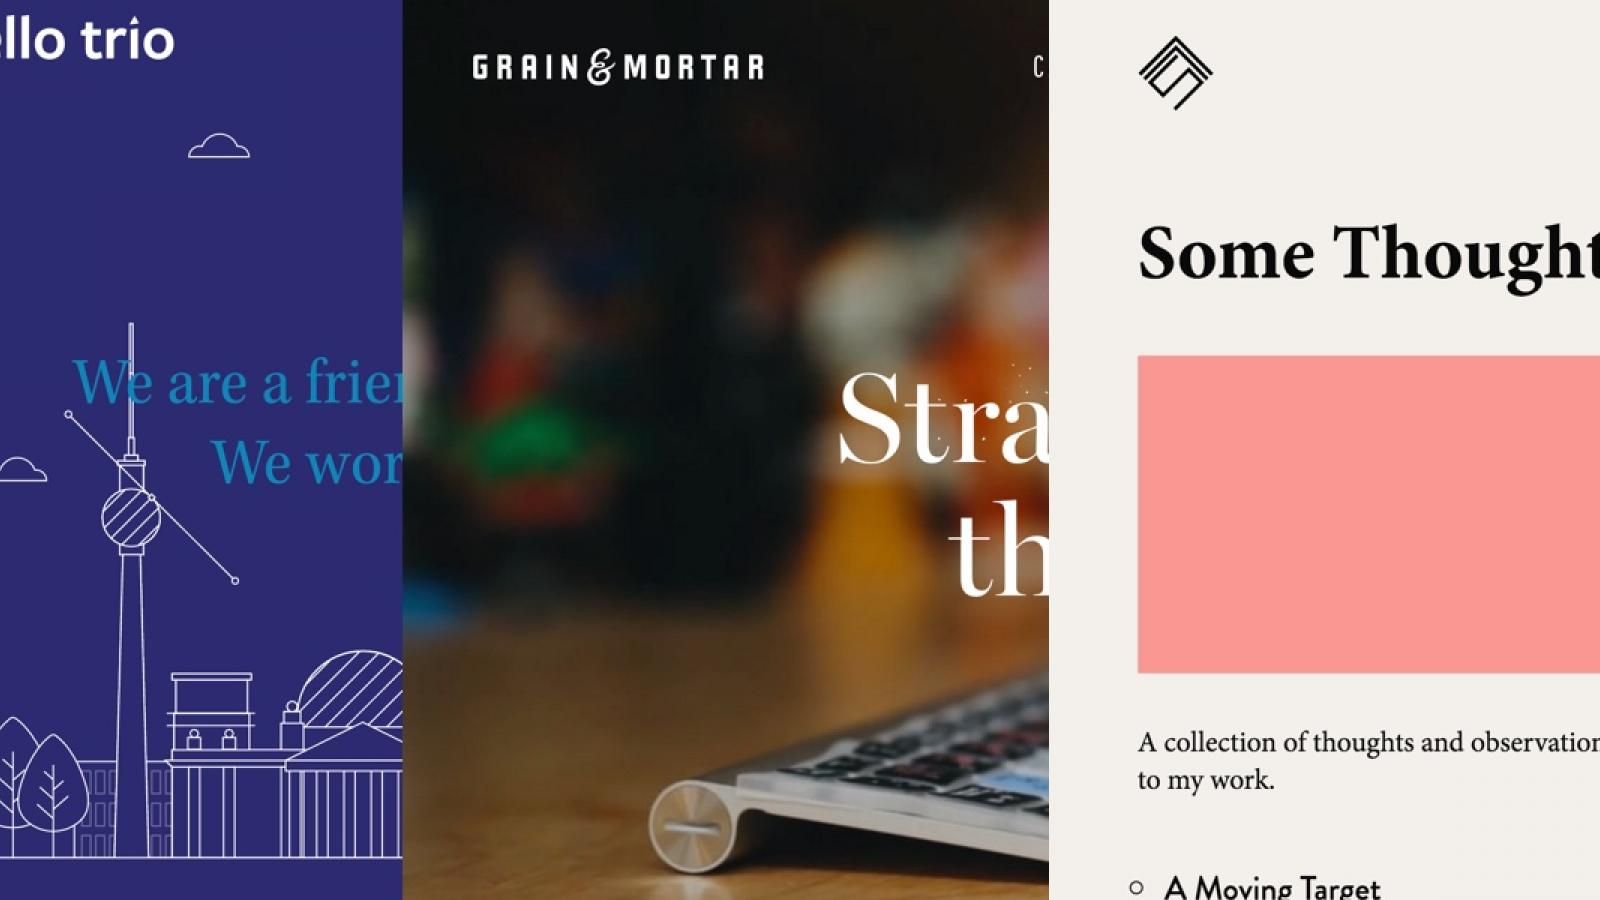 Sites of the Week: Simon Foster, BUILT, Grain & Mortar and more